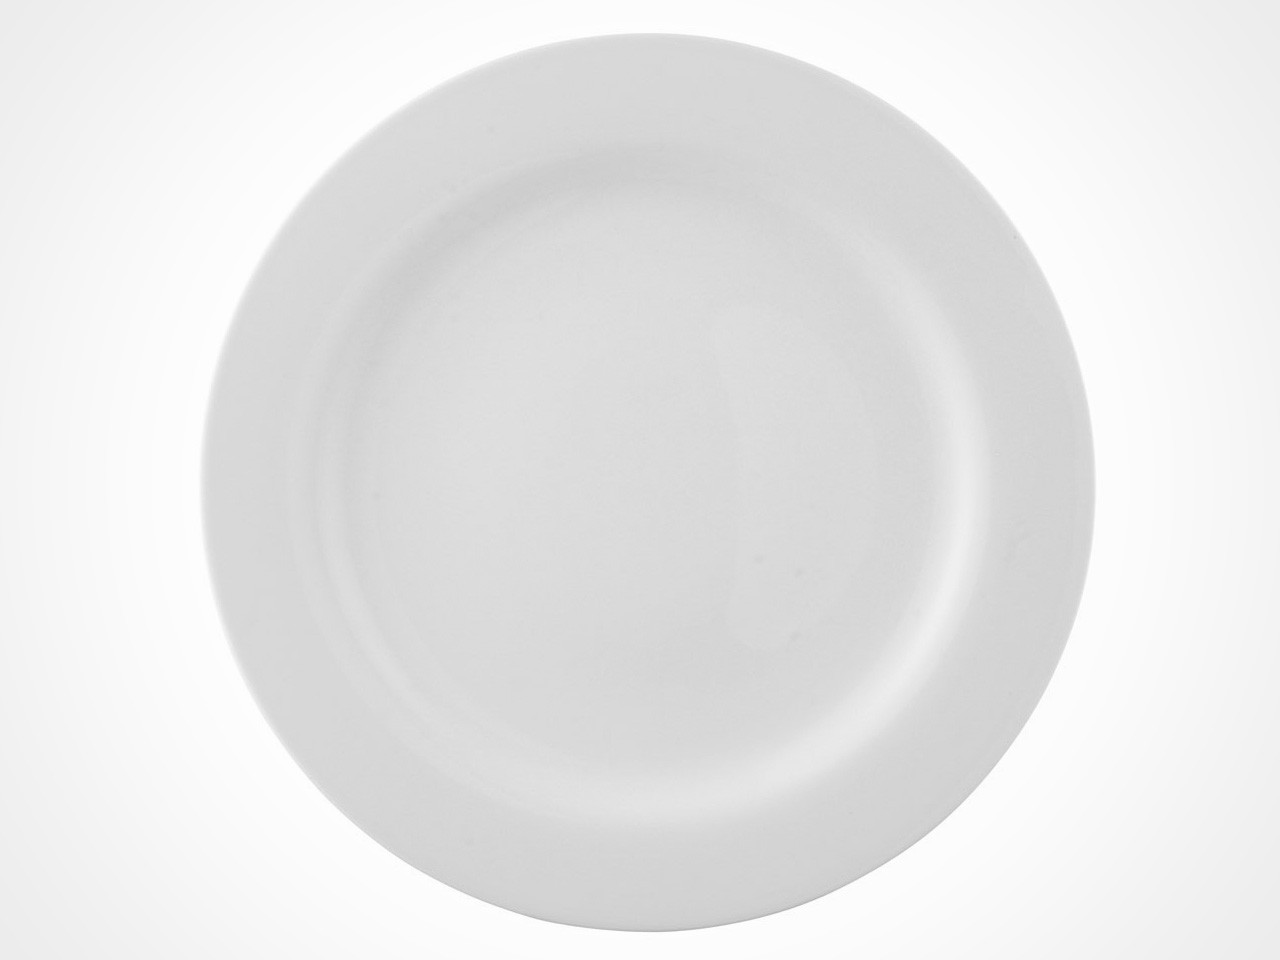 Rosenthal Moon White dinner plate on white background.